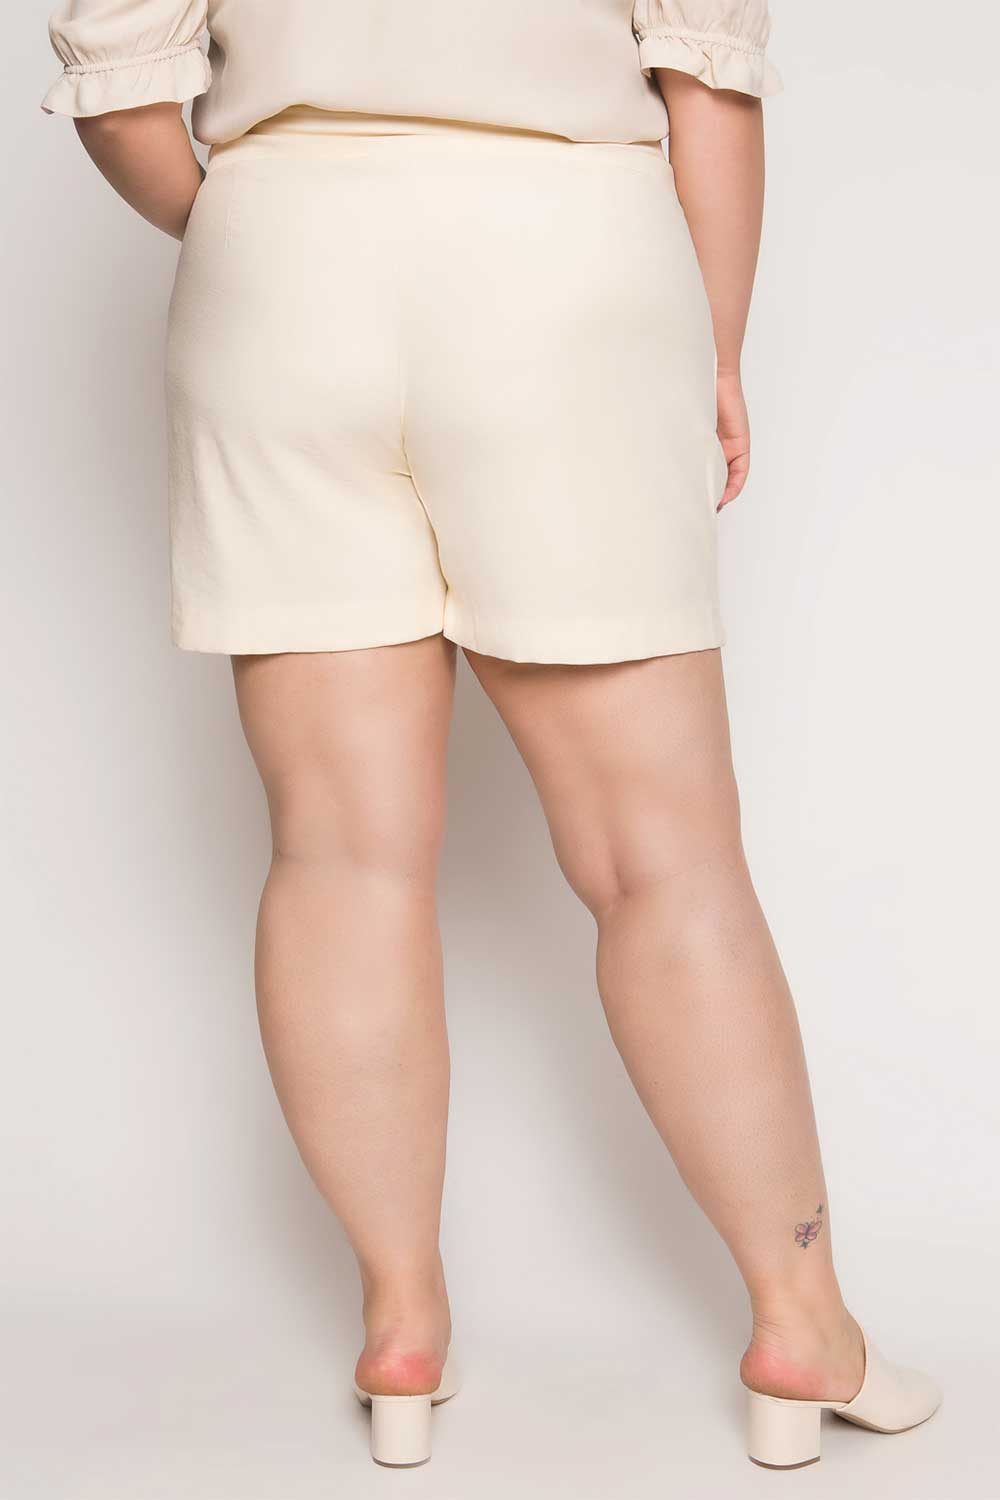 0058_Shorts_Plus_Size_Liso_OffWhite_4